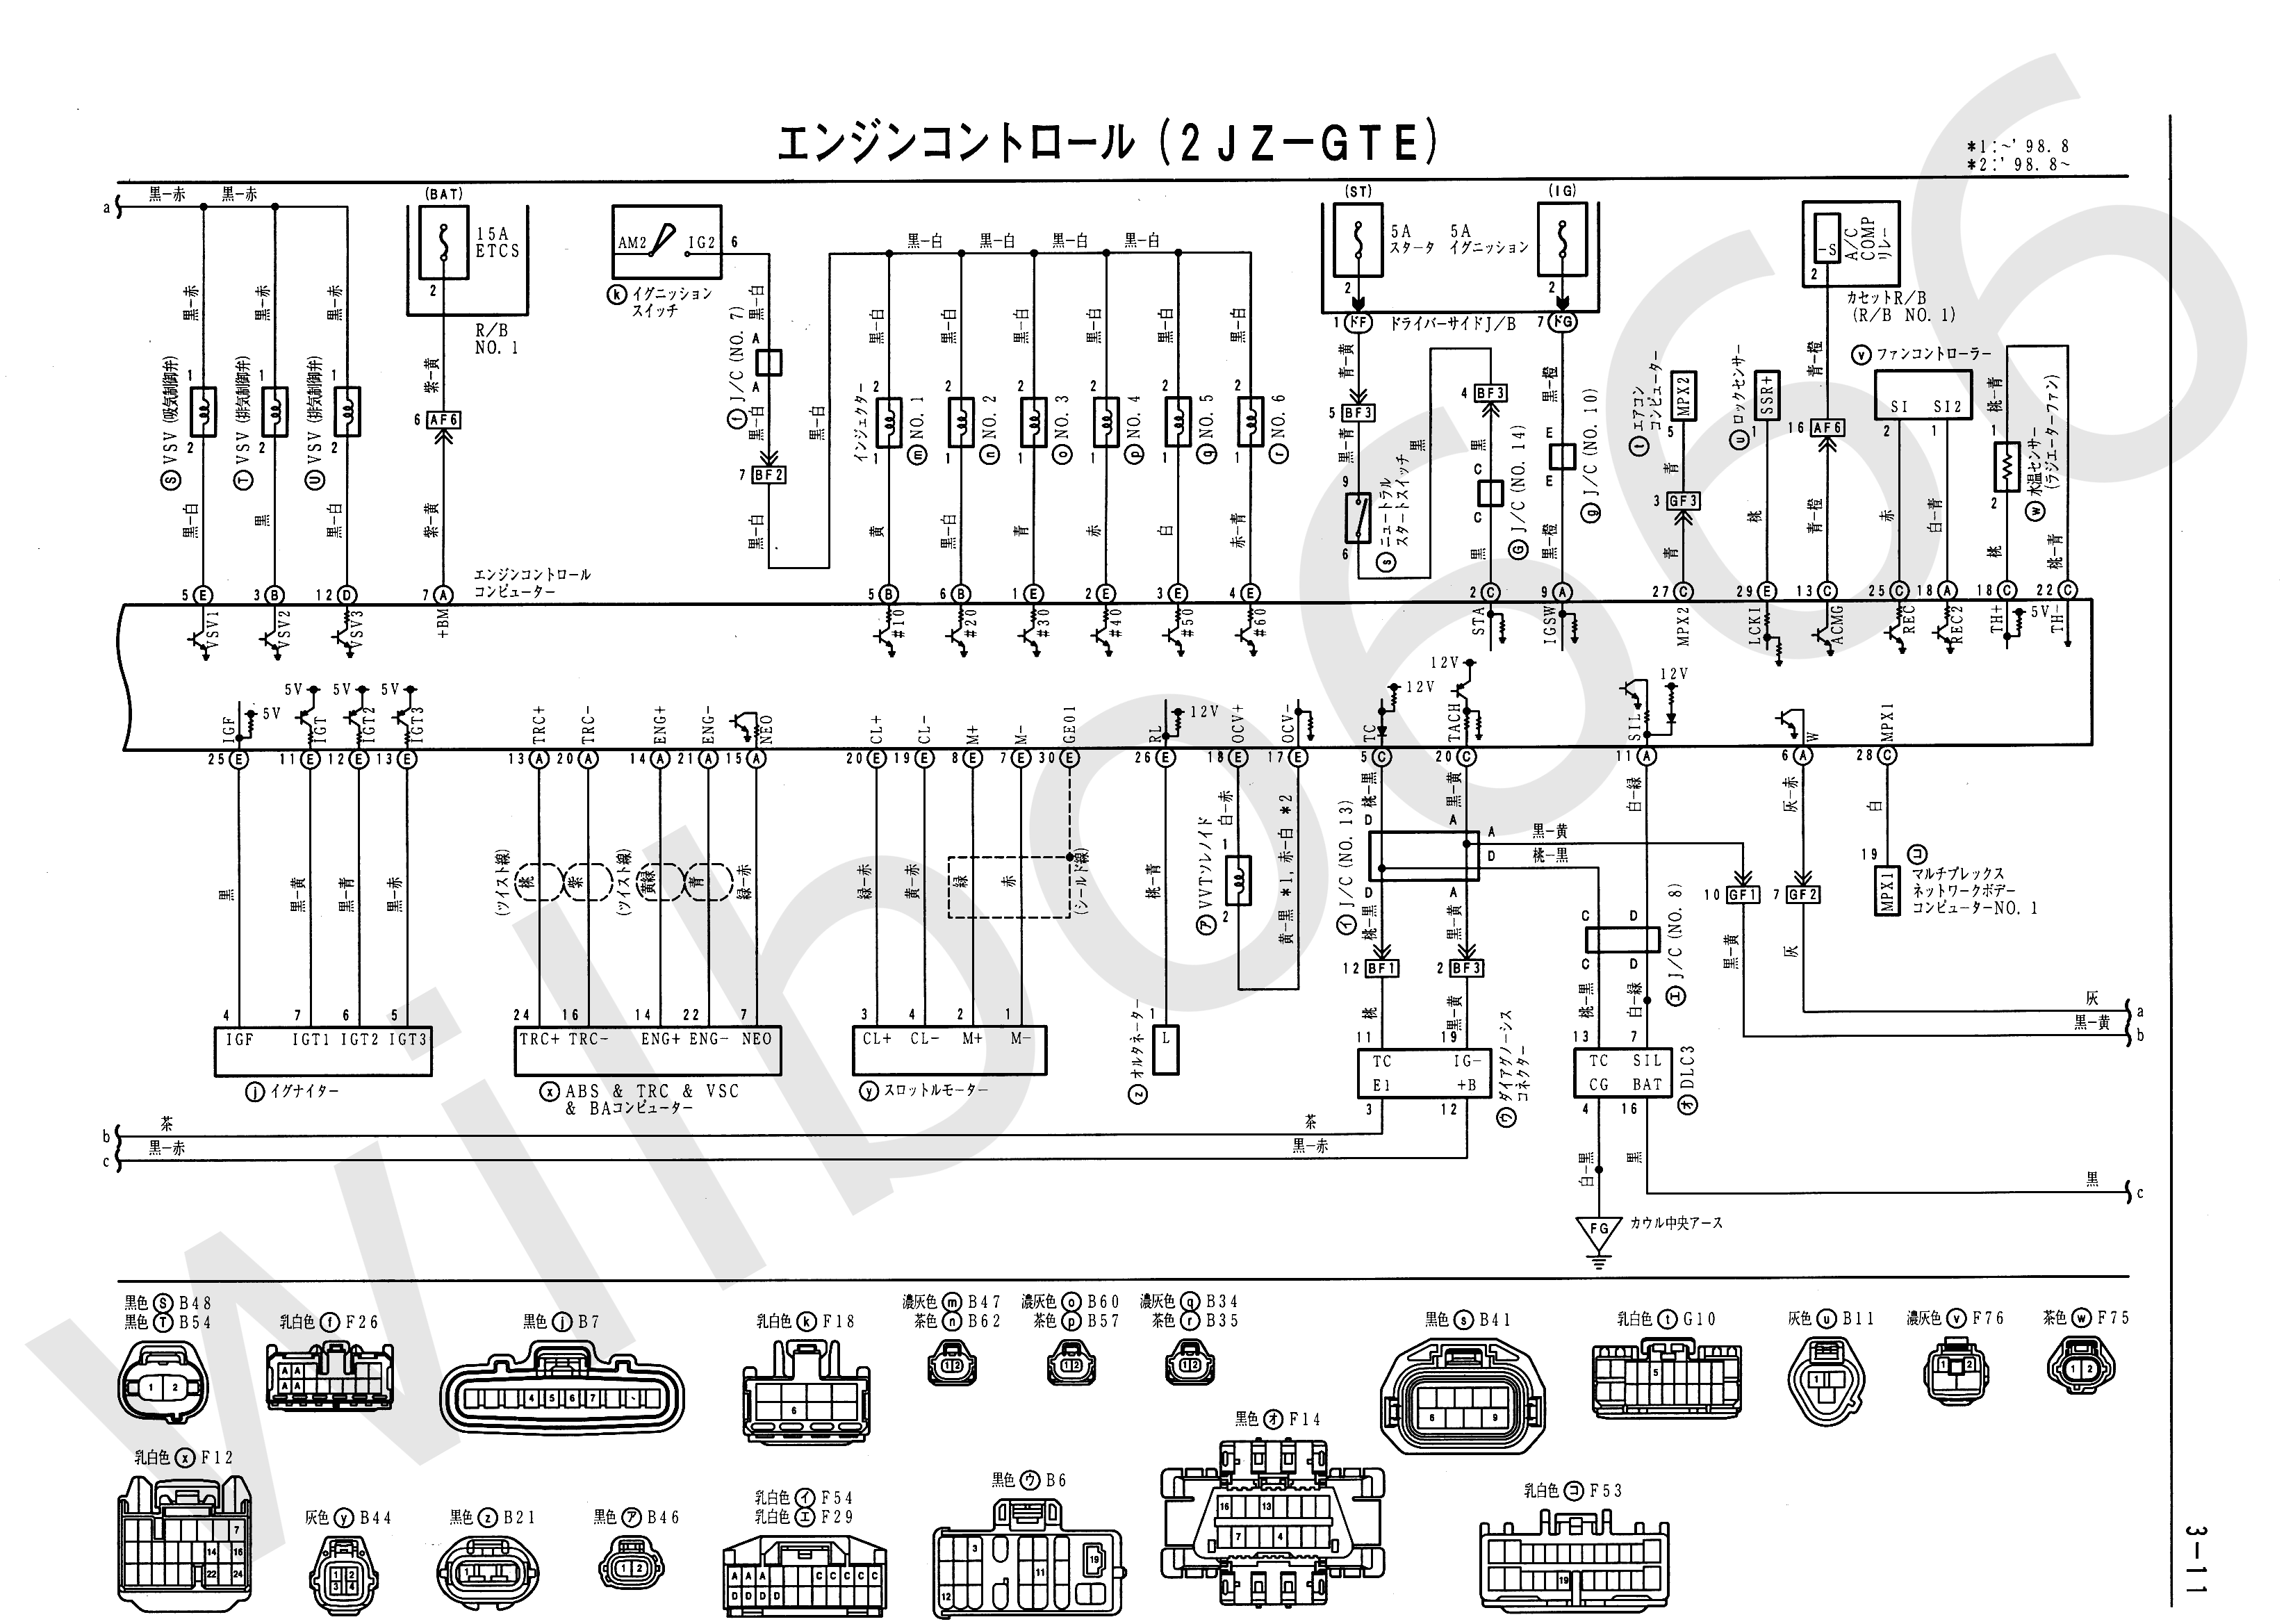 JZS161 Electrical Wiring Diagram 6748505 3 11 2jz ge wiring diagram pdf wiring diagram simonand ge wiring diagrams at panicattacktreatment.co